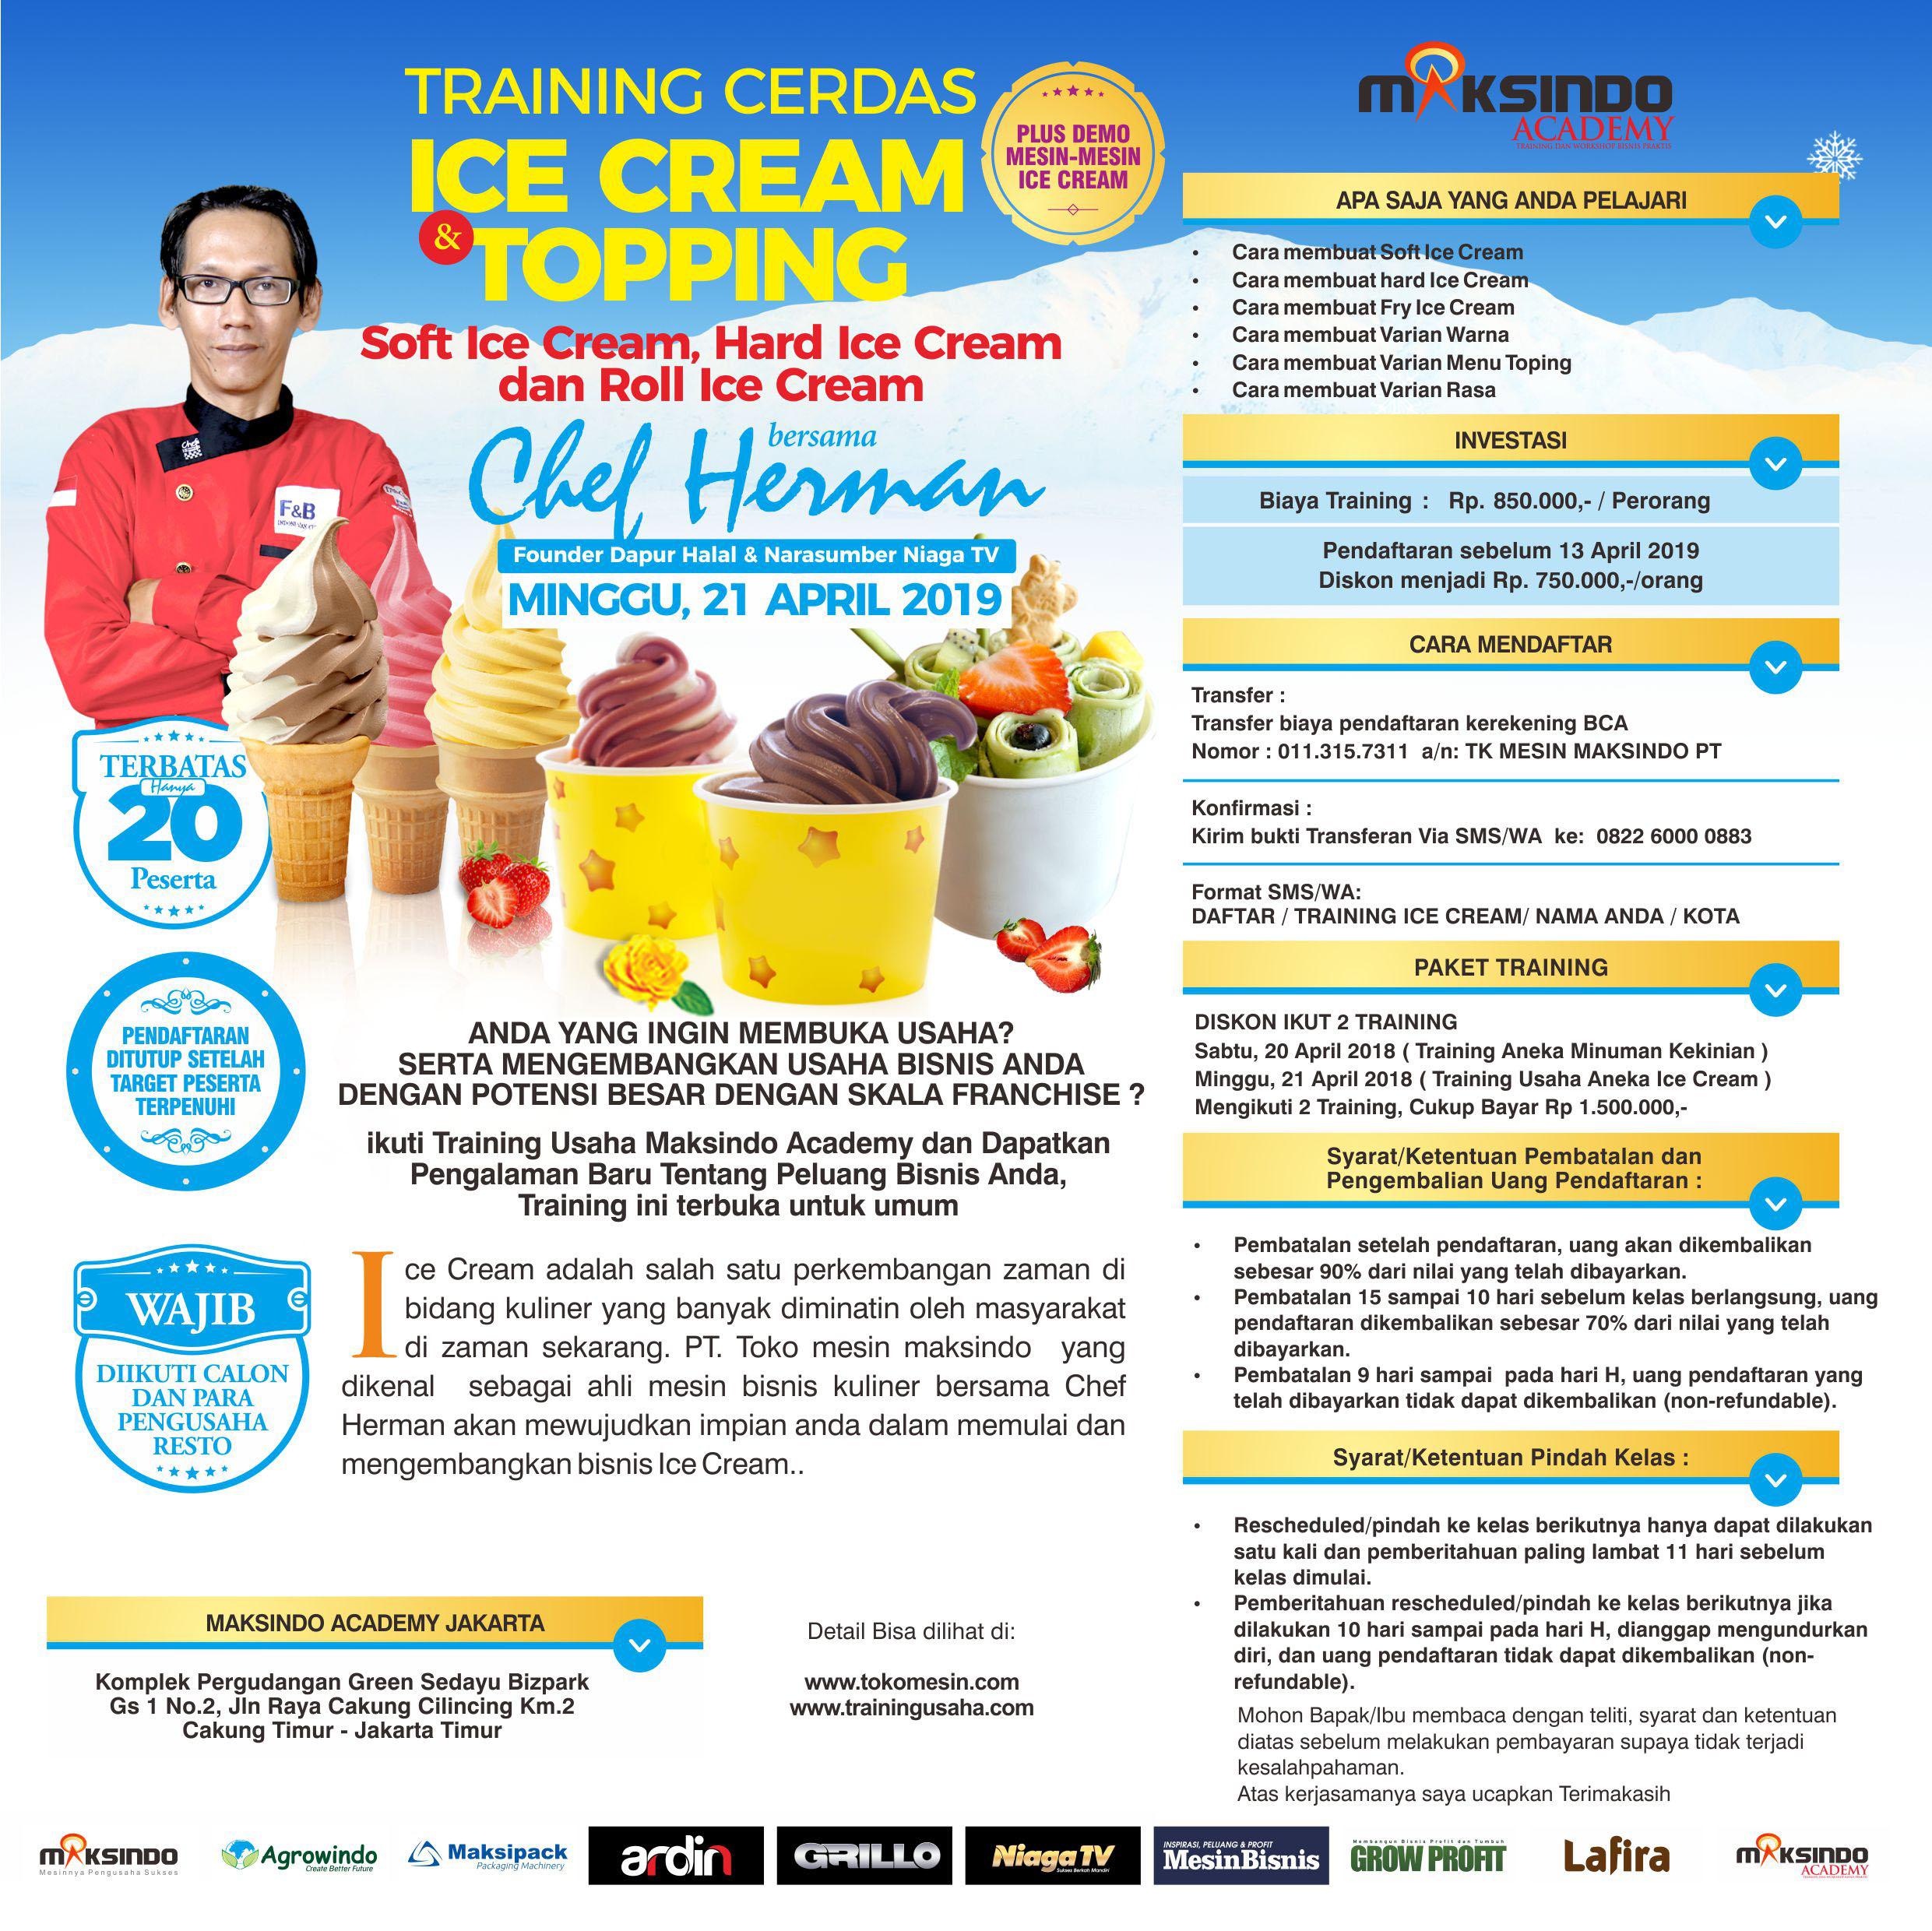 Training Usaha Ice Cream Dan Topping, Sabtu 21 April 2019